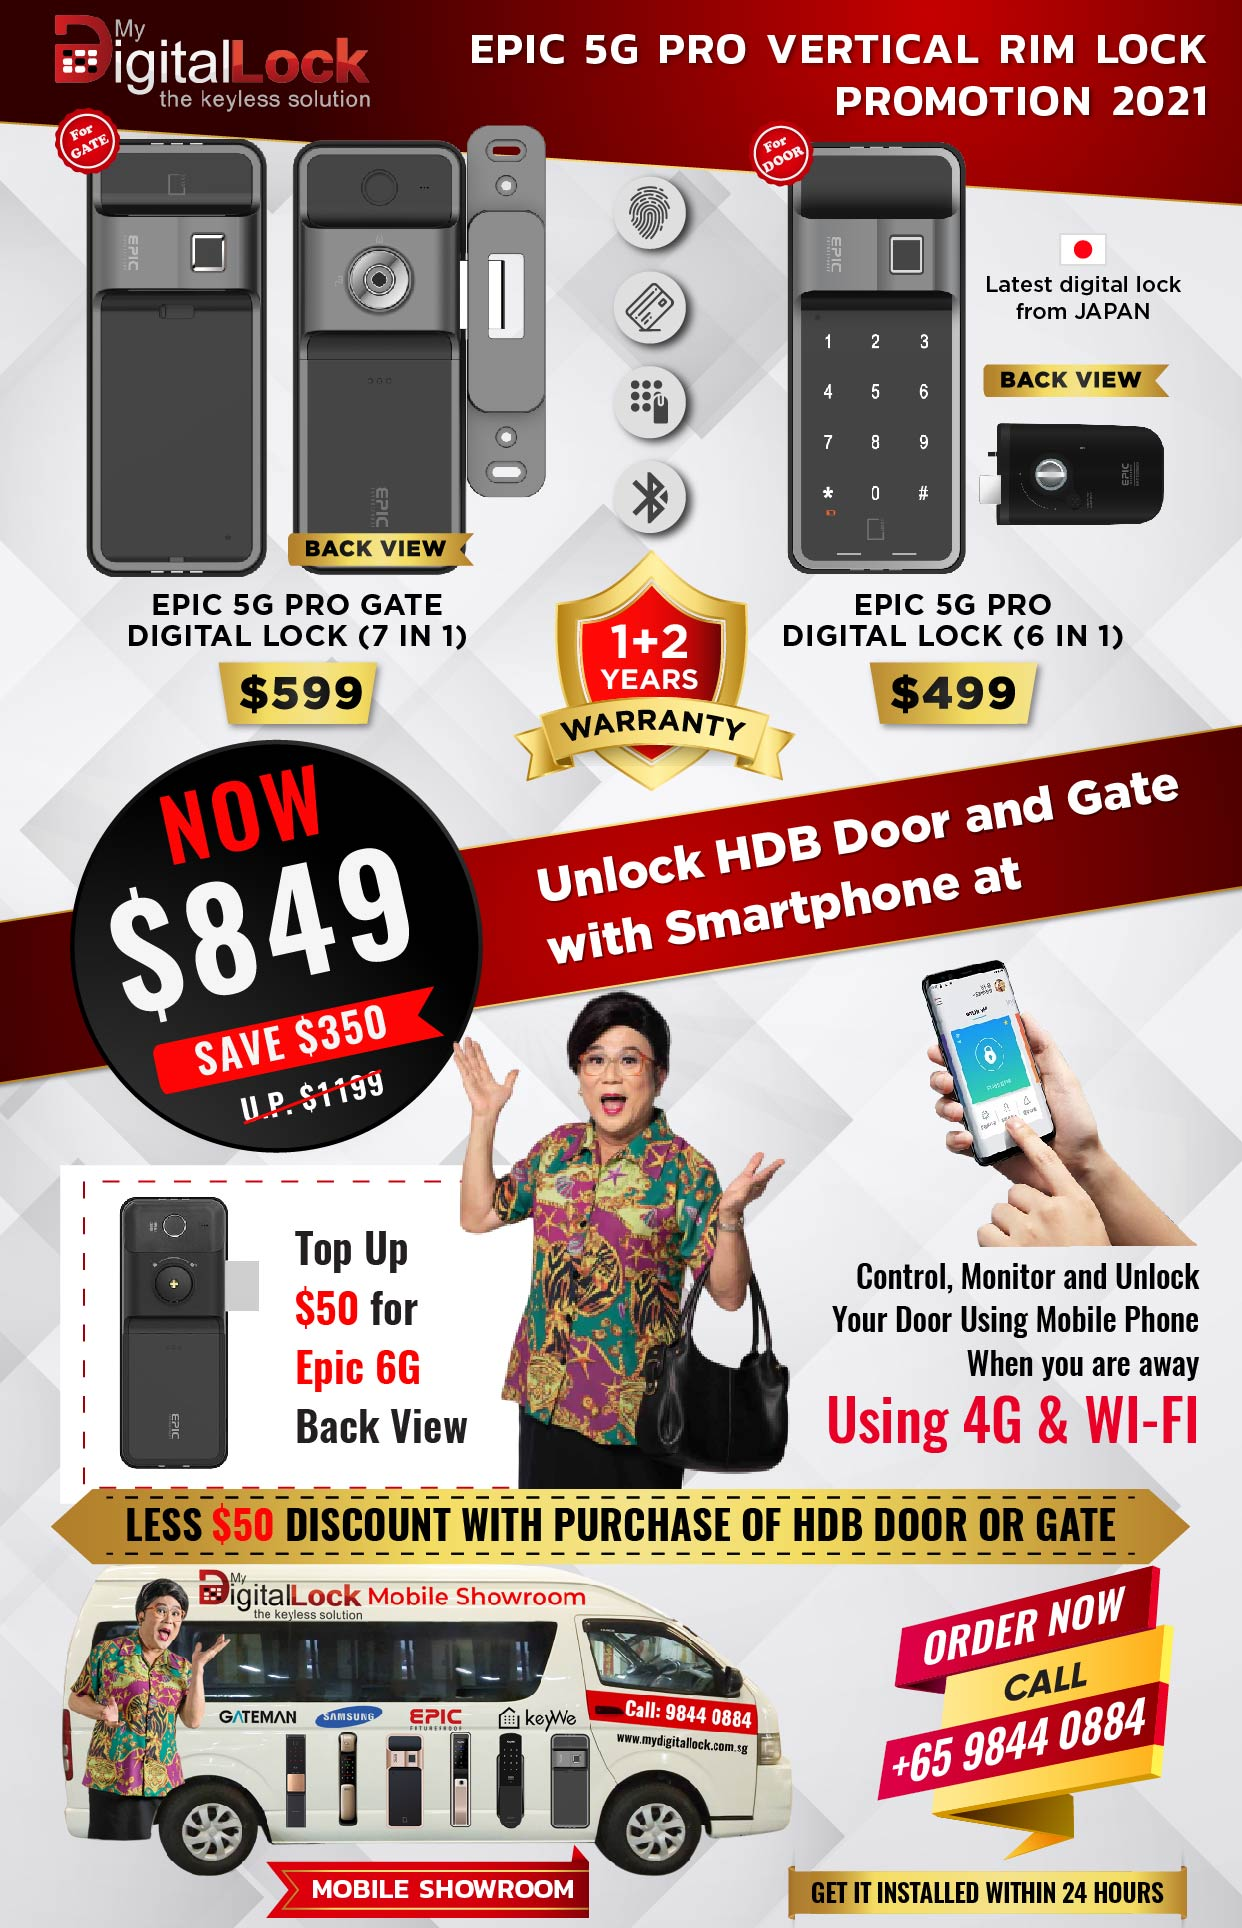 Epic 5G Pro Vertical Rim Lock Promotion 2021